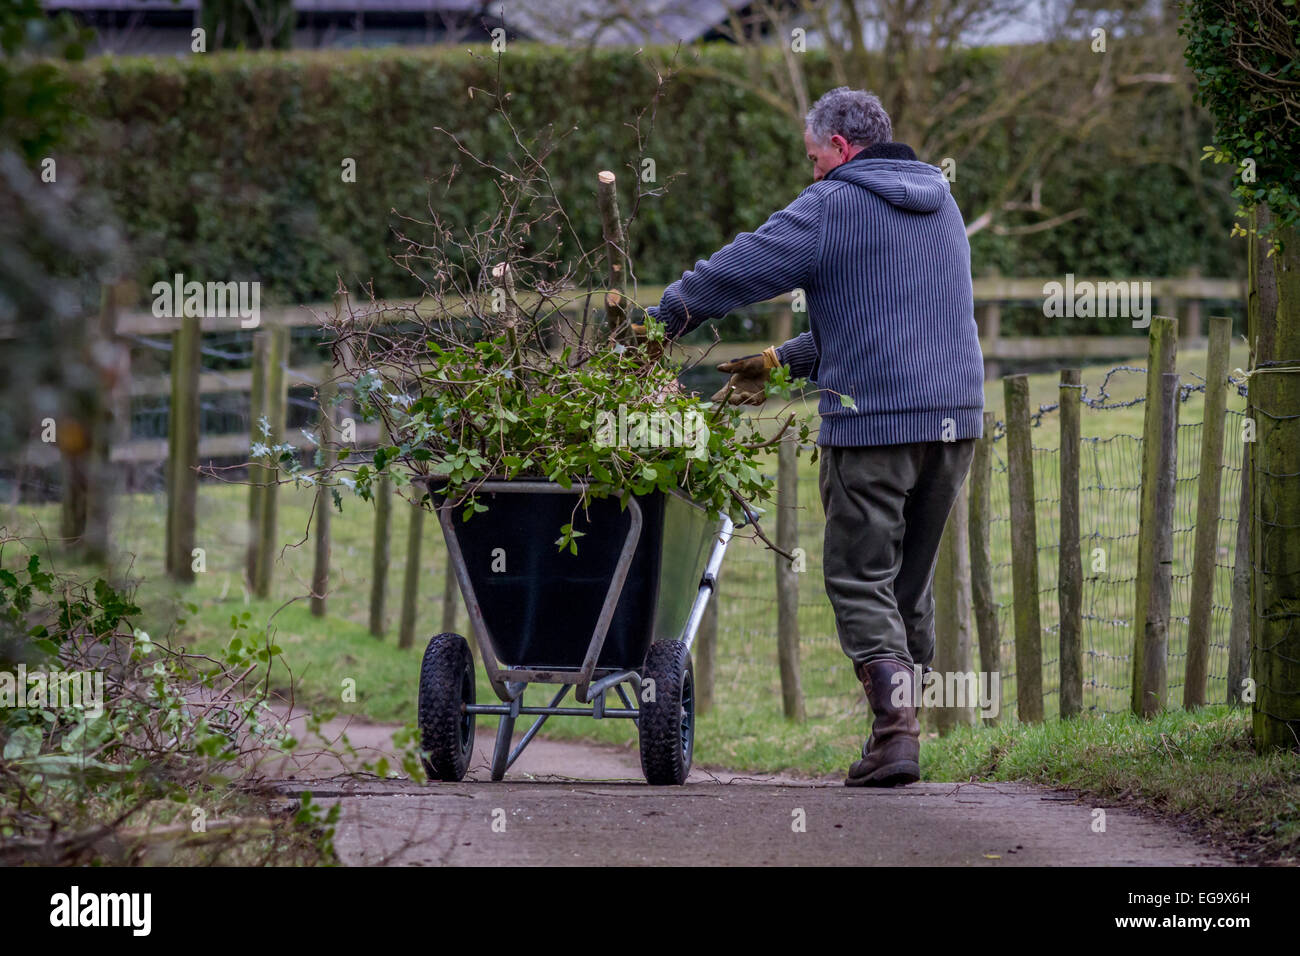 Man gardening using wheelbarrow to collect clippings in winter/spring - Stock Image